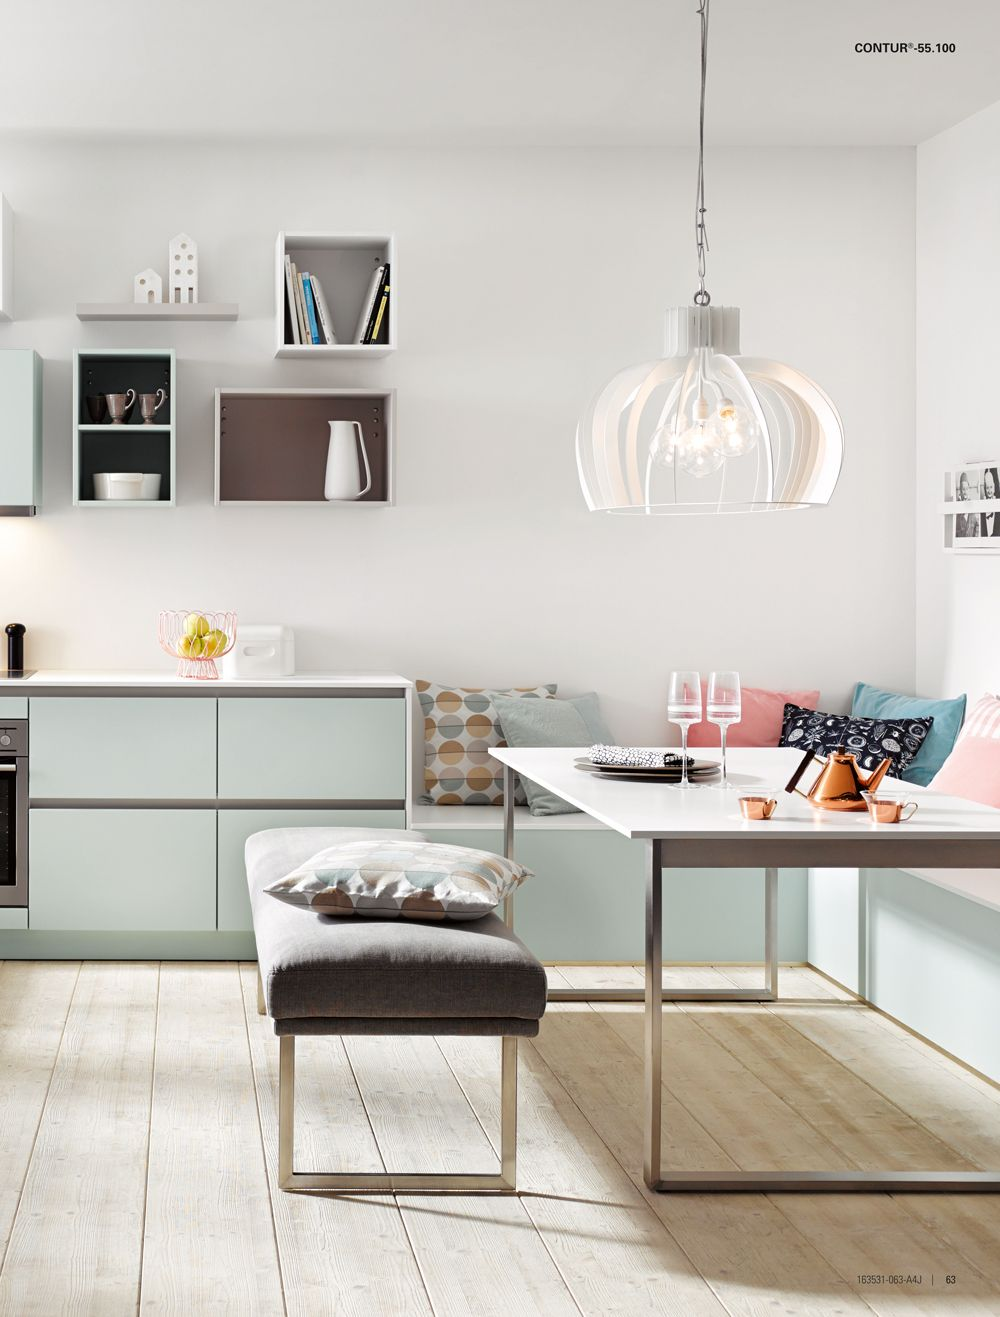 Contur® Kitchen Book Our Kitchen Book shows the complete range of ...